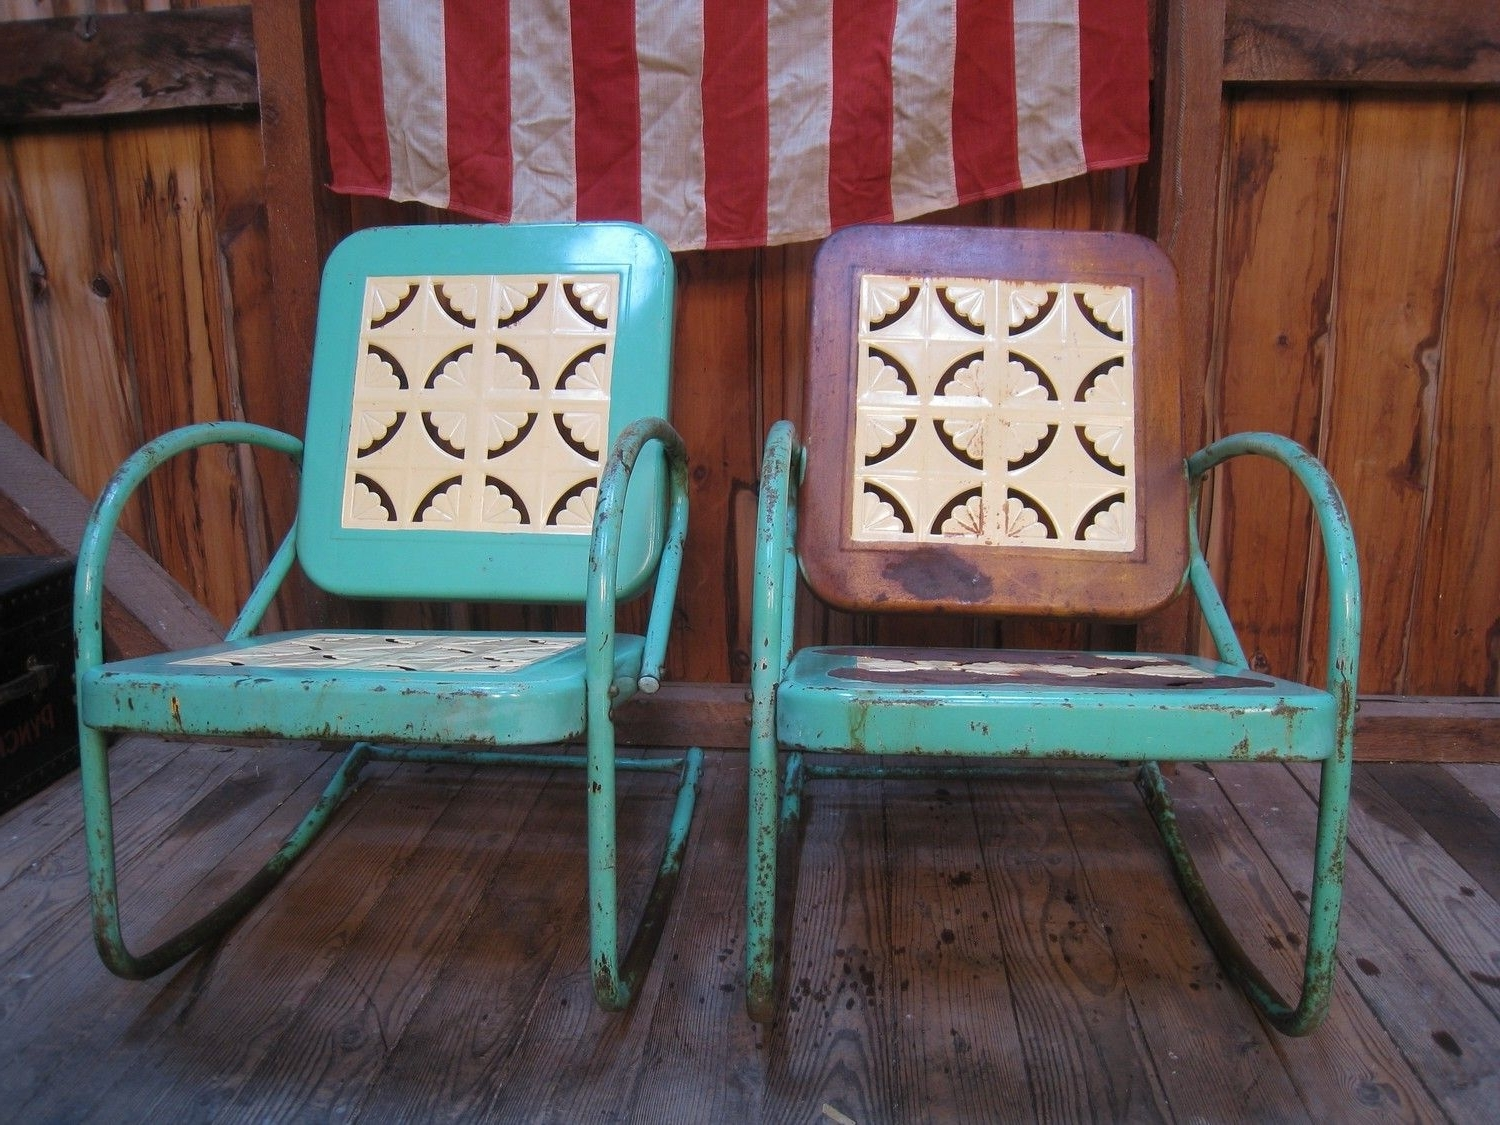 Most Recent Vintage Metal Rocking Patio Chairs Regarding Vintage 1950s Metal Lawn Porch Glider Patio Chairs (View 5 of 20)